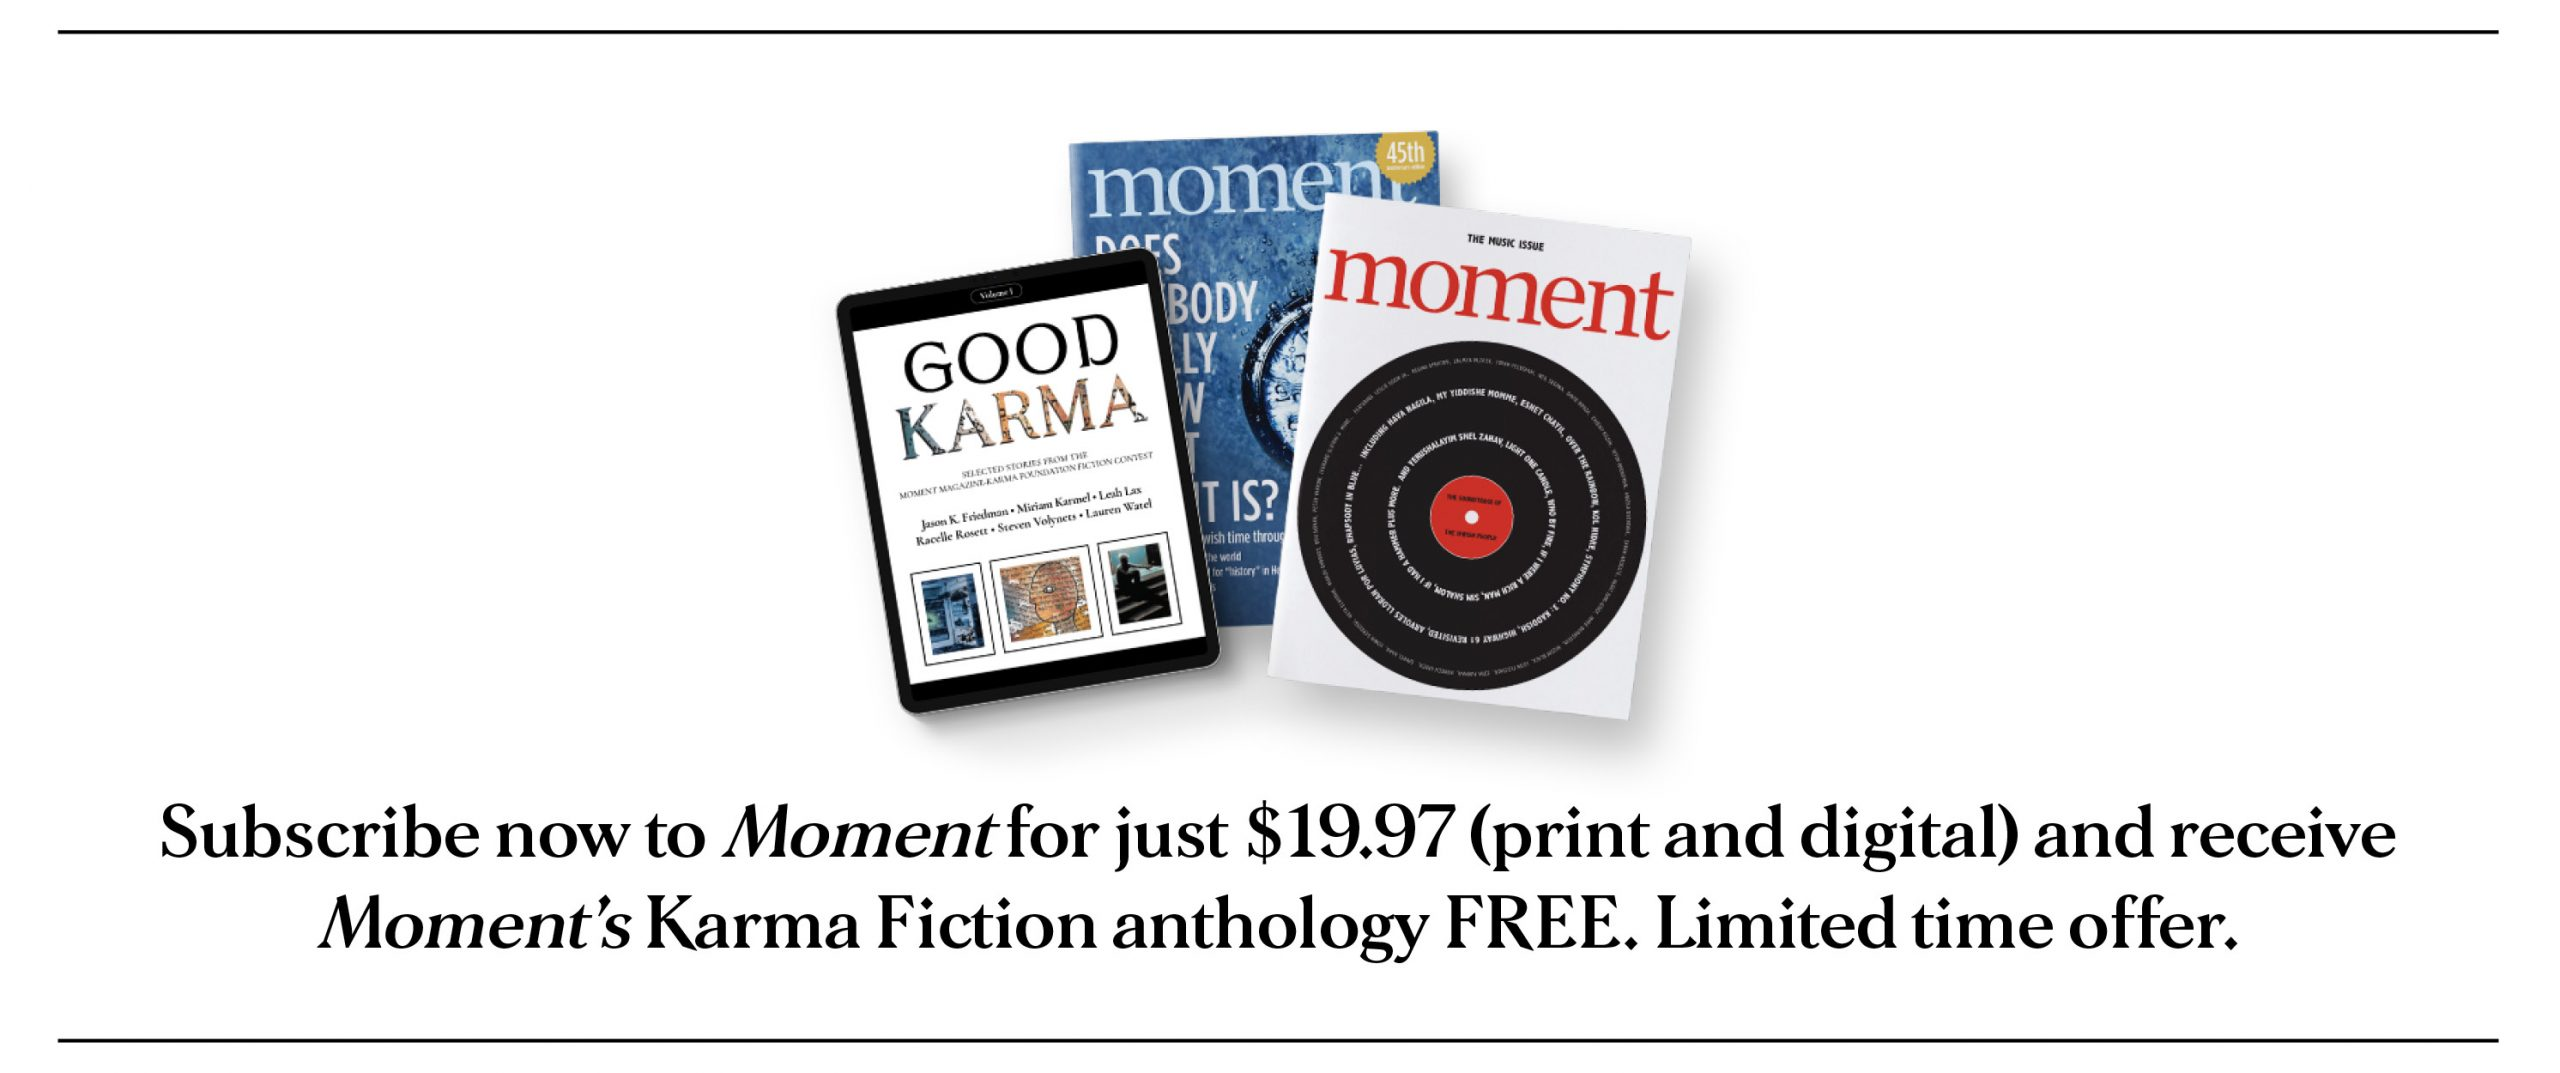 Moment for just $19.97...subscribe now and get Good Karma FREE